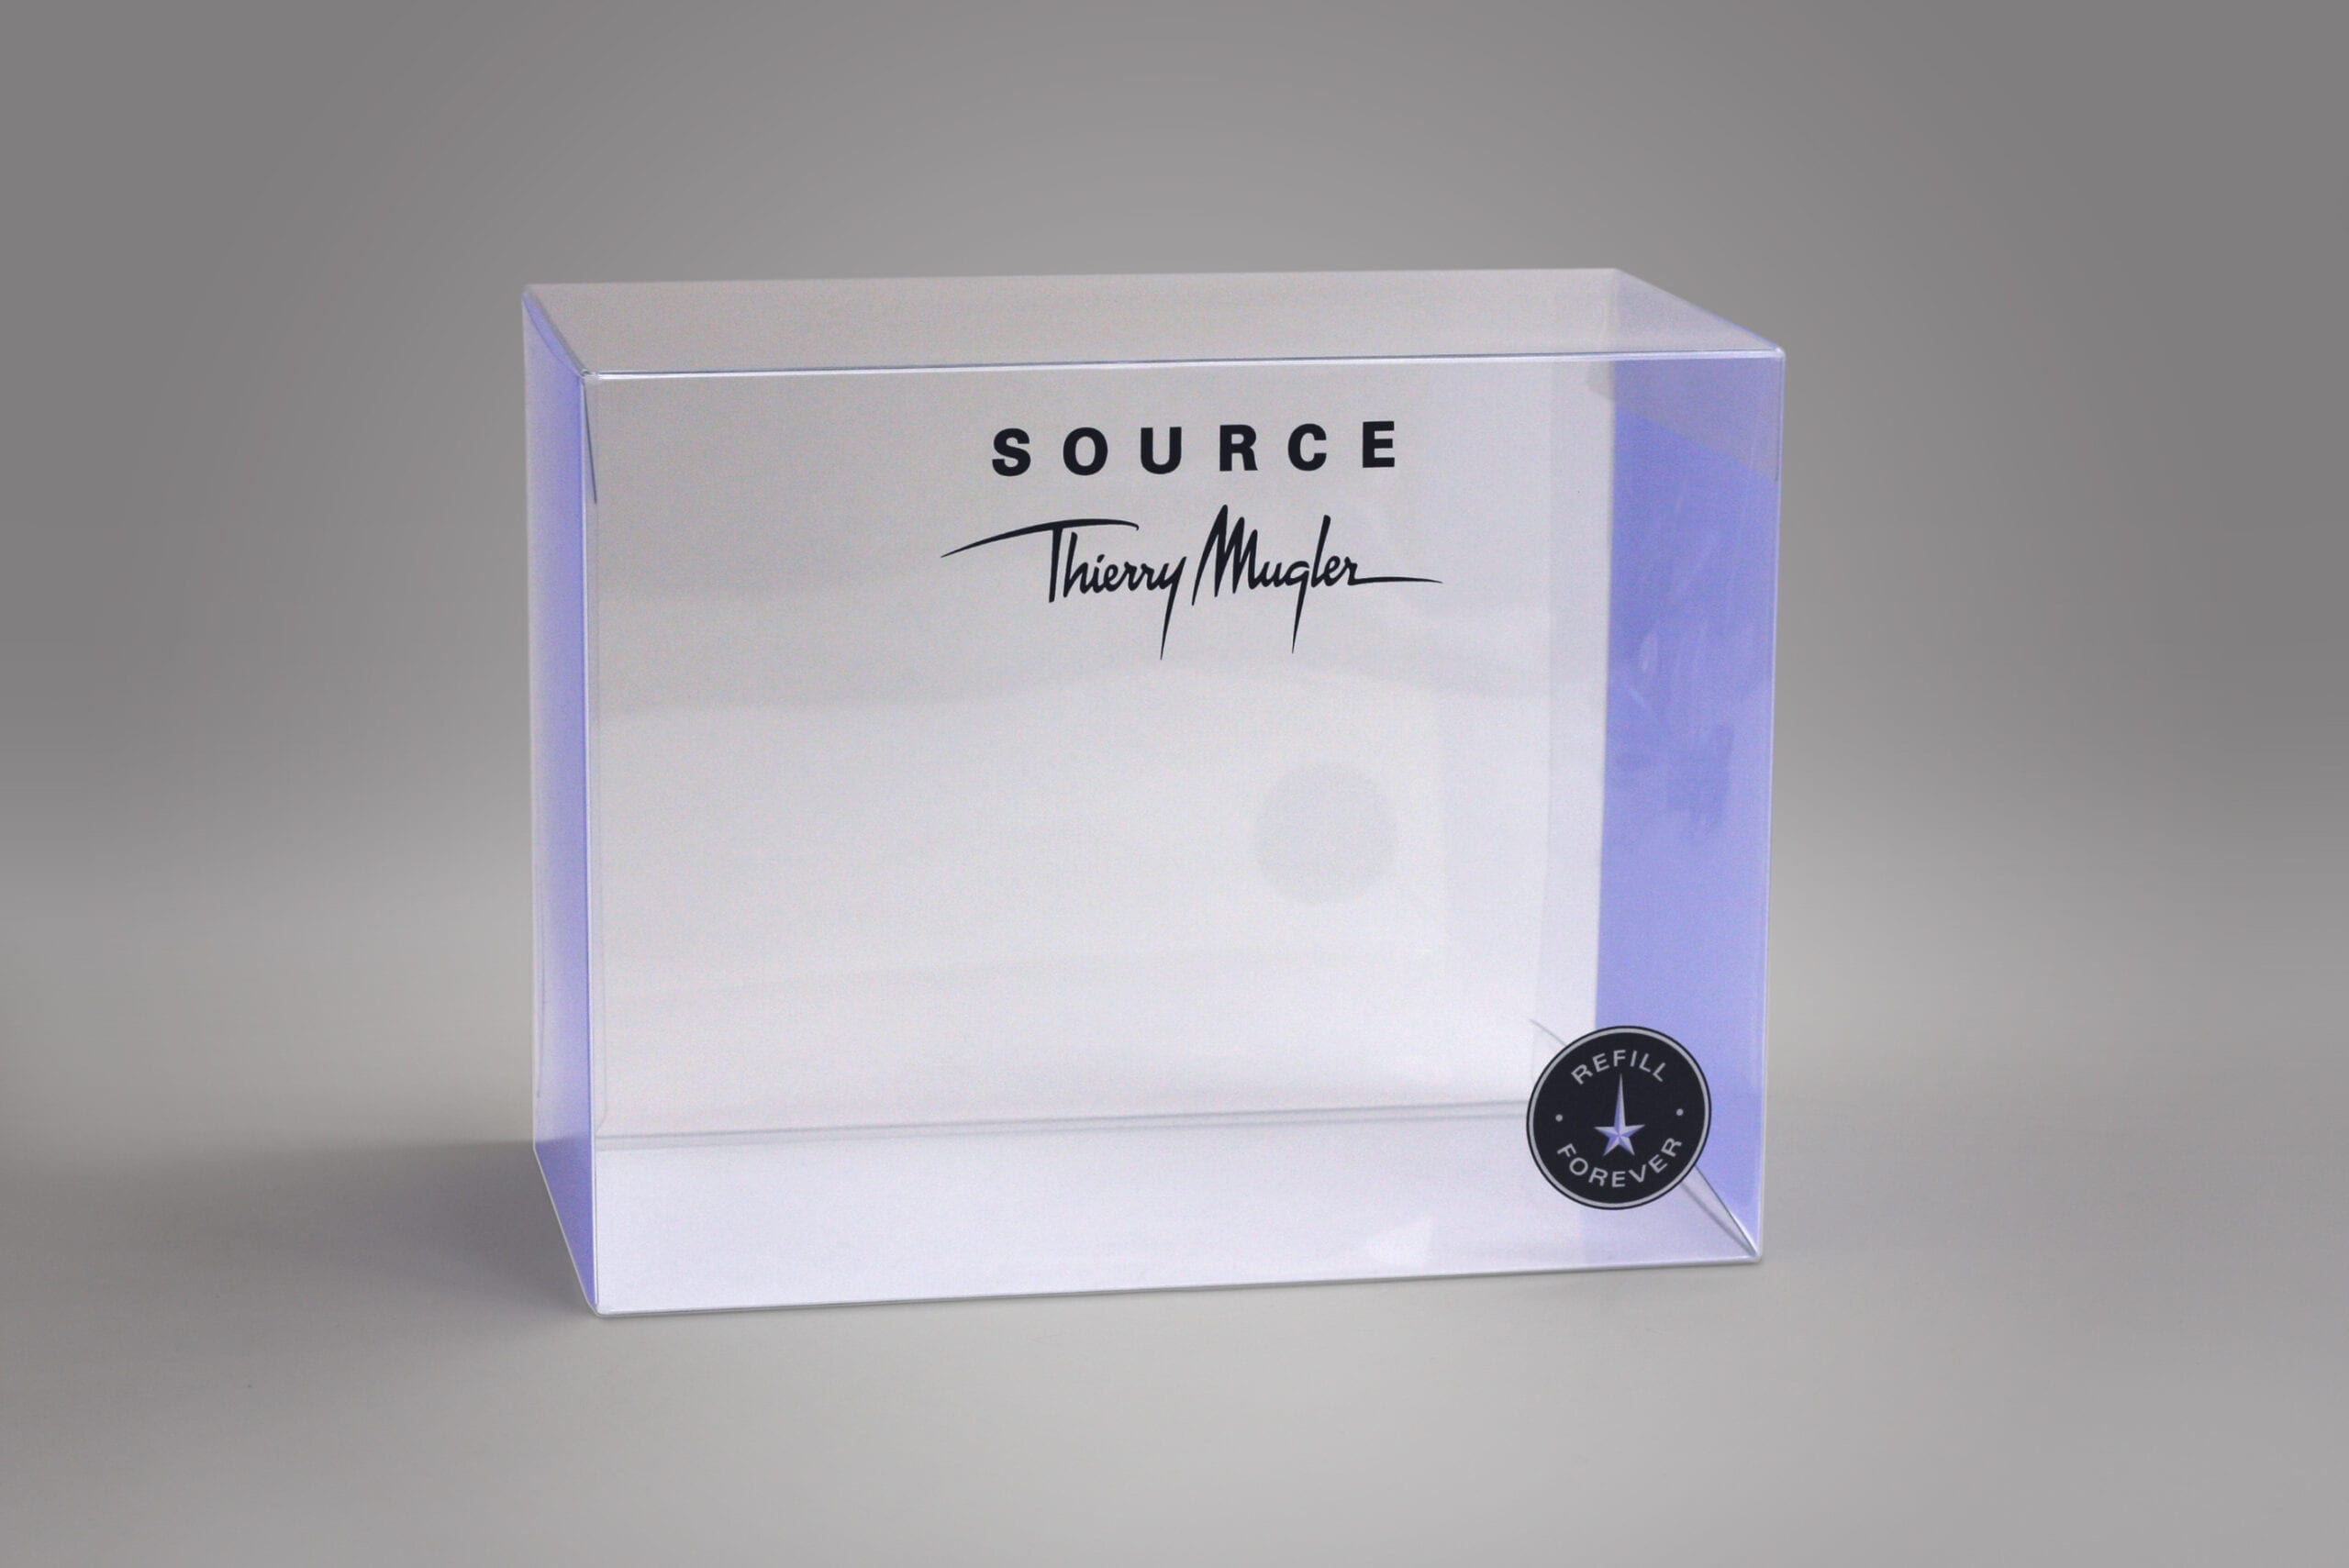 As a leader in our industry in custom clear packaging, we take pride in our ability to create and manufacture visually appealing packaging for your product. This custom clear folding box we created for a client exemplifies our ability to package your product effectively.